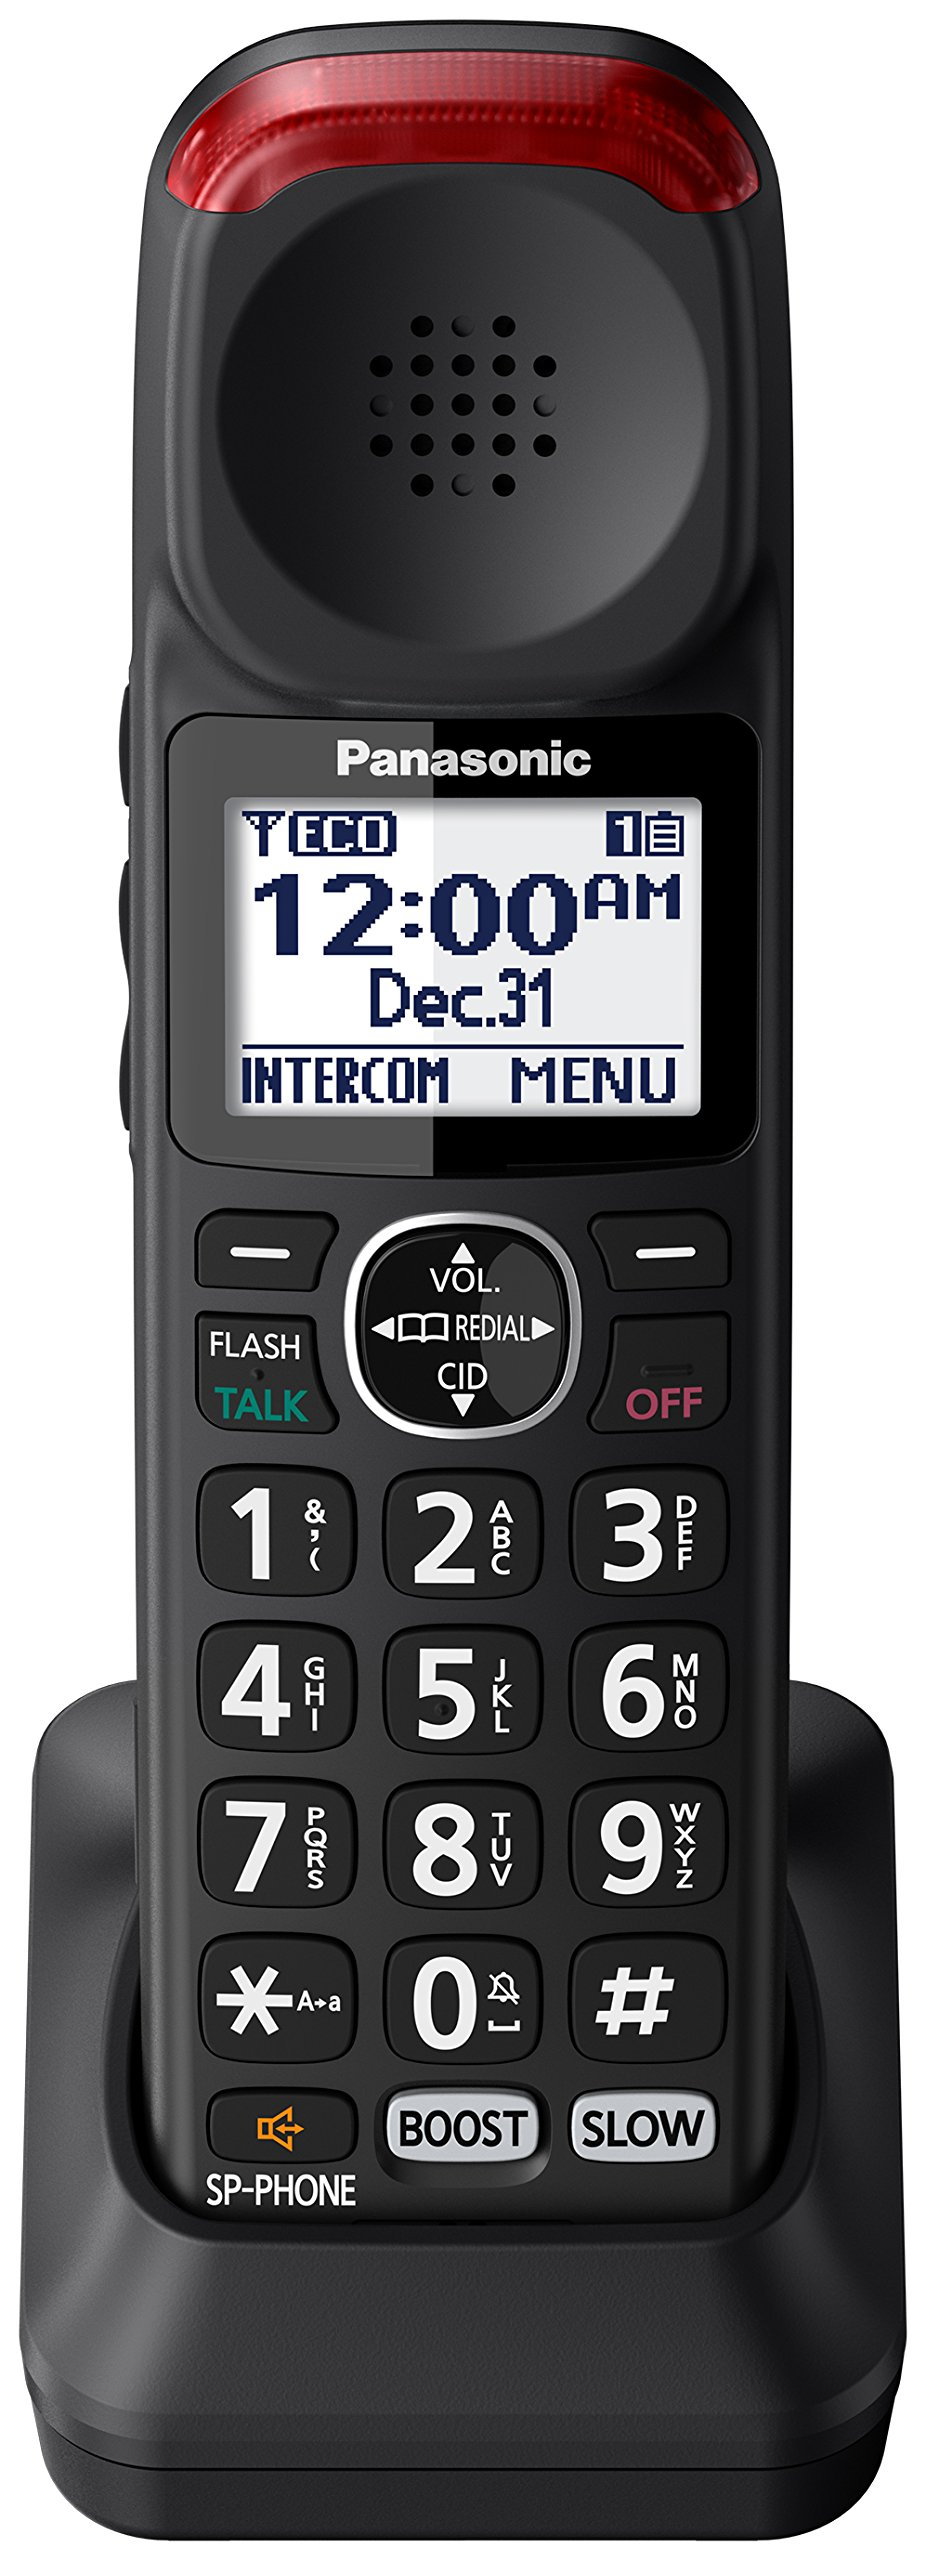 Panasonic KX-TGMA44B Amplified Additional Cordless Handset for KX-TGM430B, Black